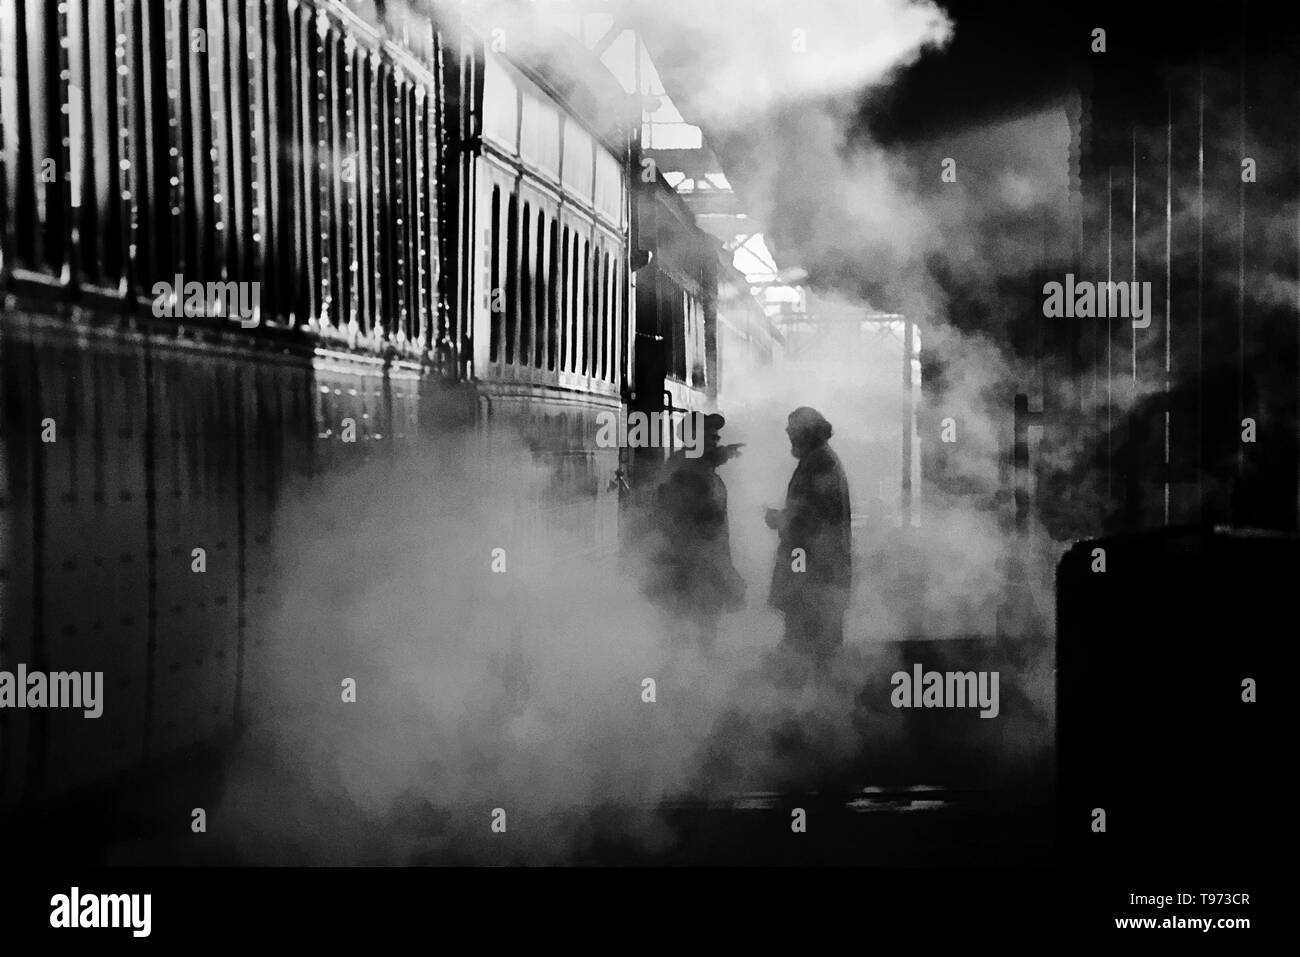 Silhouetted against steam on a cold winter afternoon, a train passenger asks directions at South Station in Boston, MA. - Stock Image